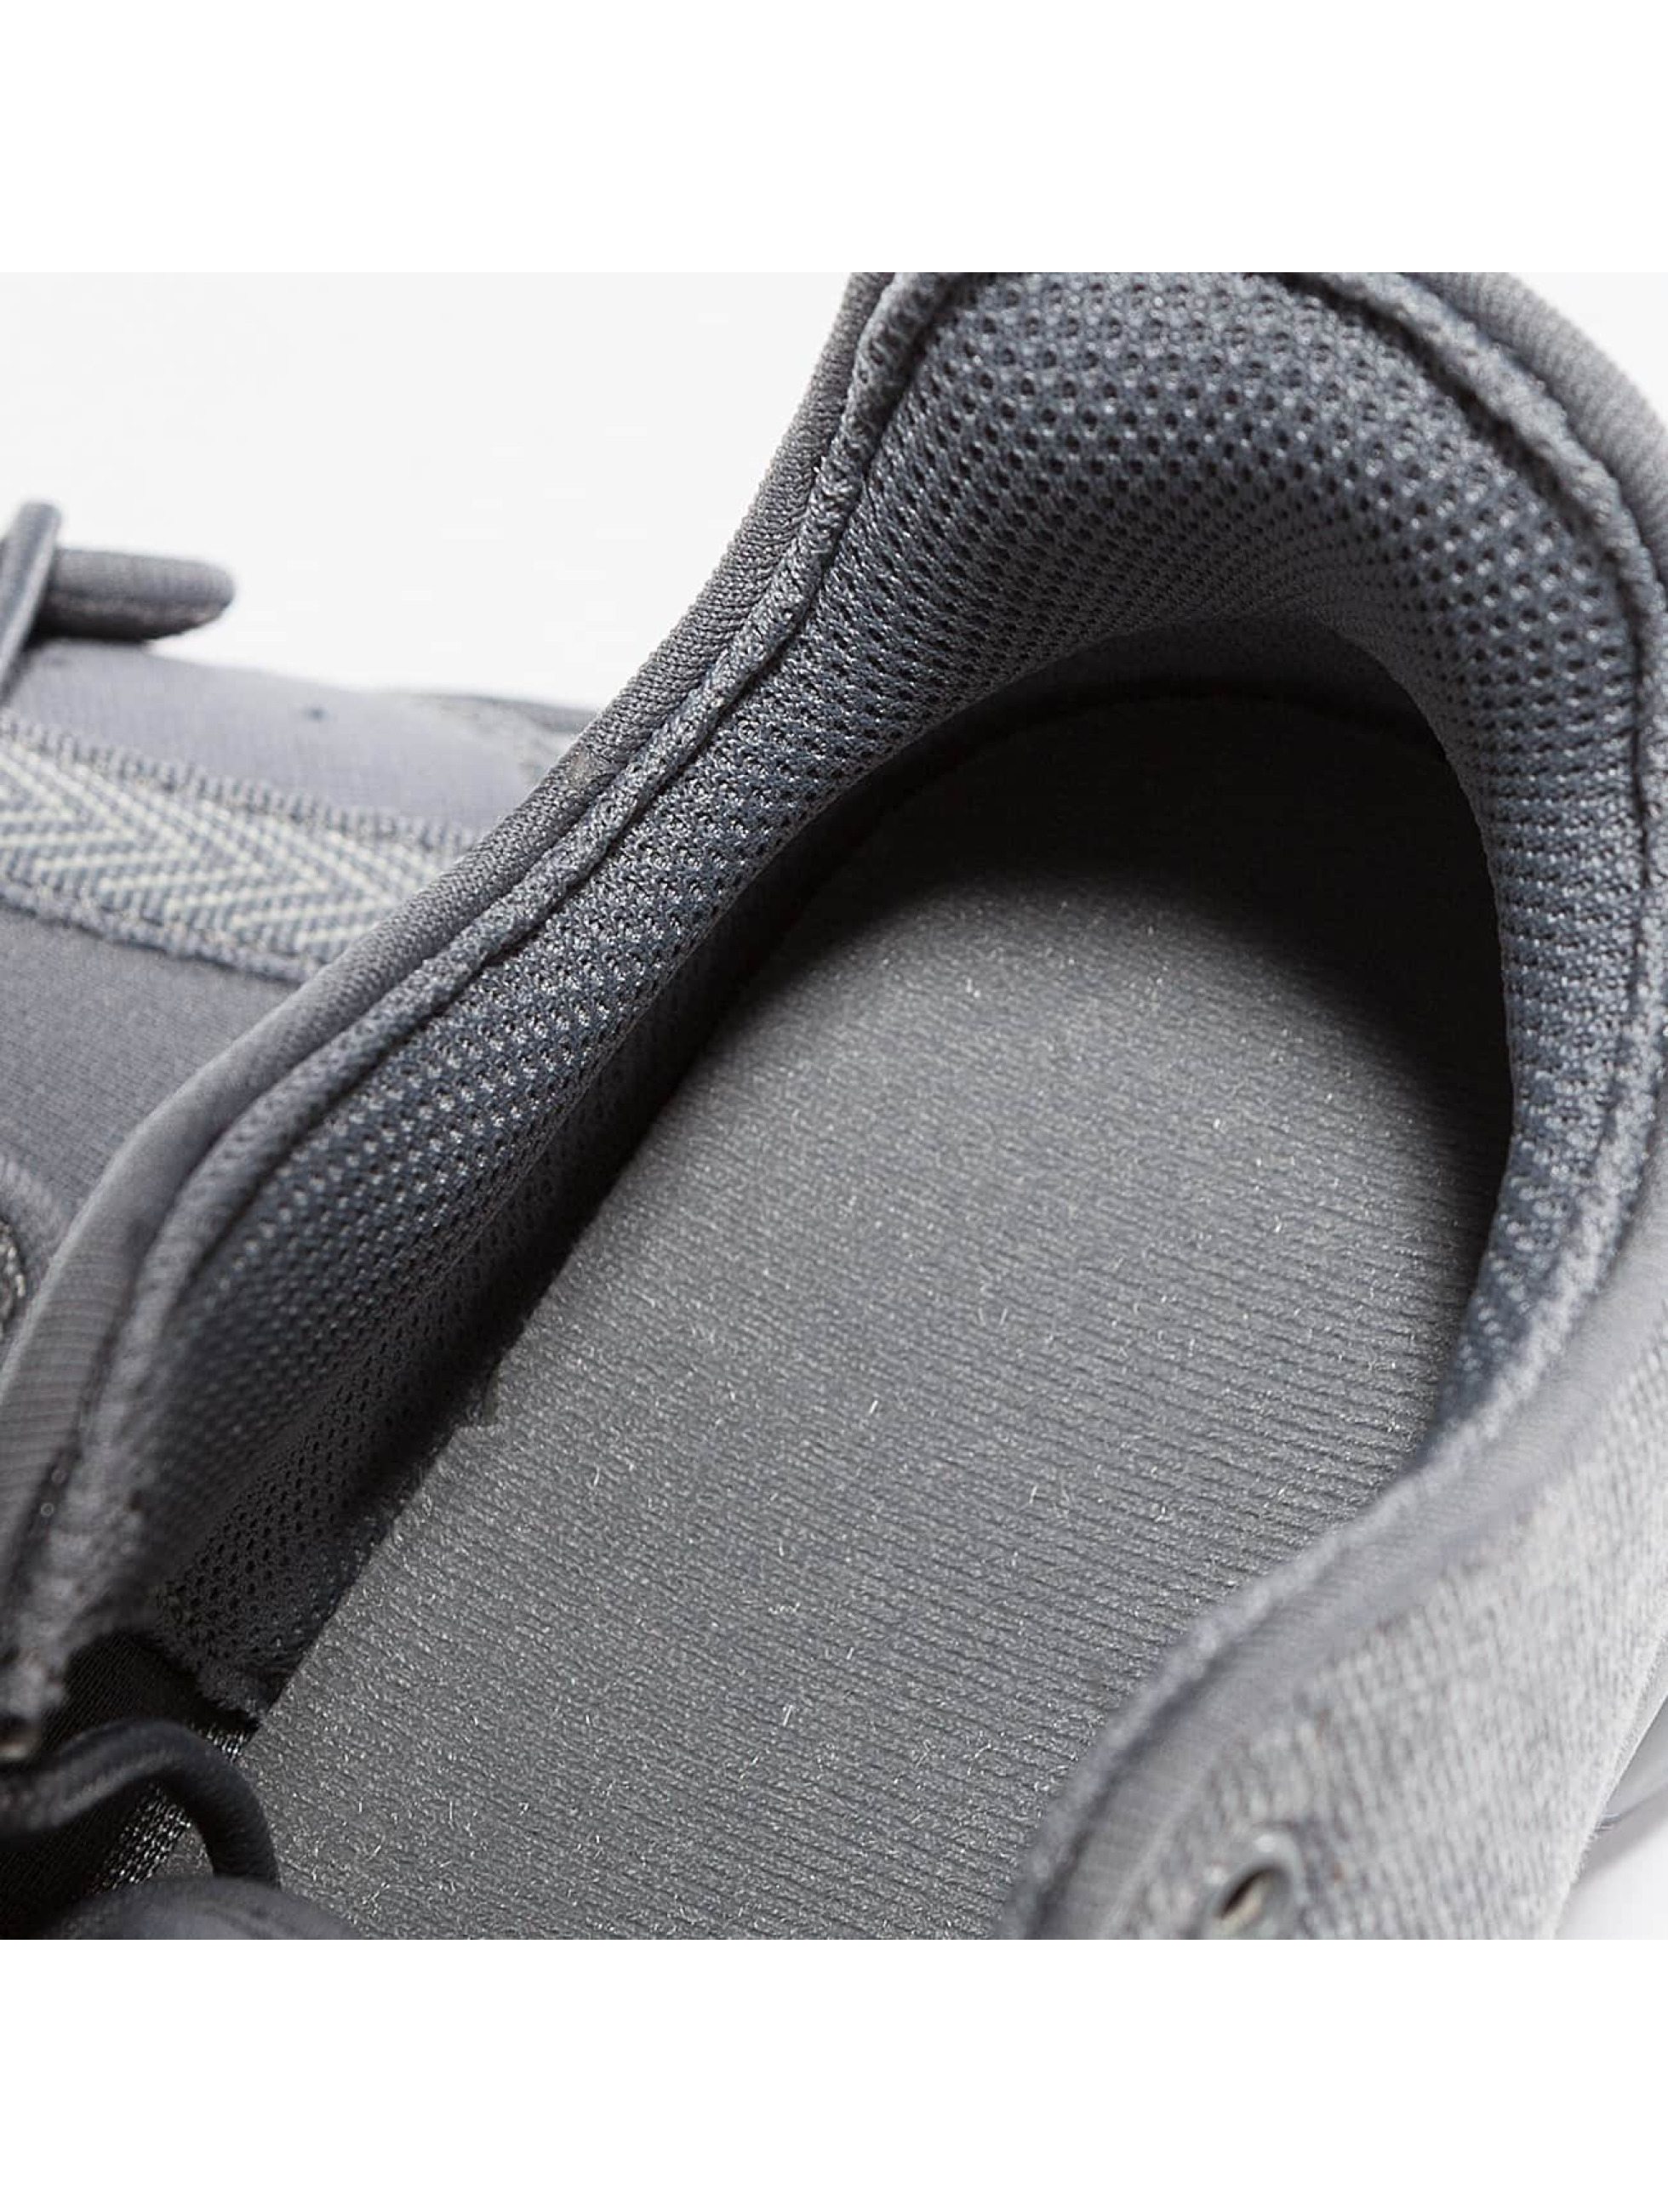 Jordan Sneakers Eclipse BG grey